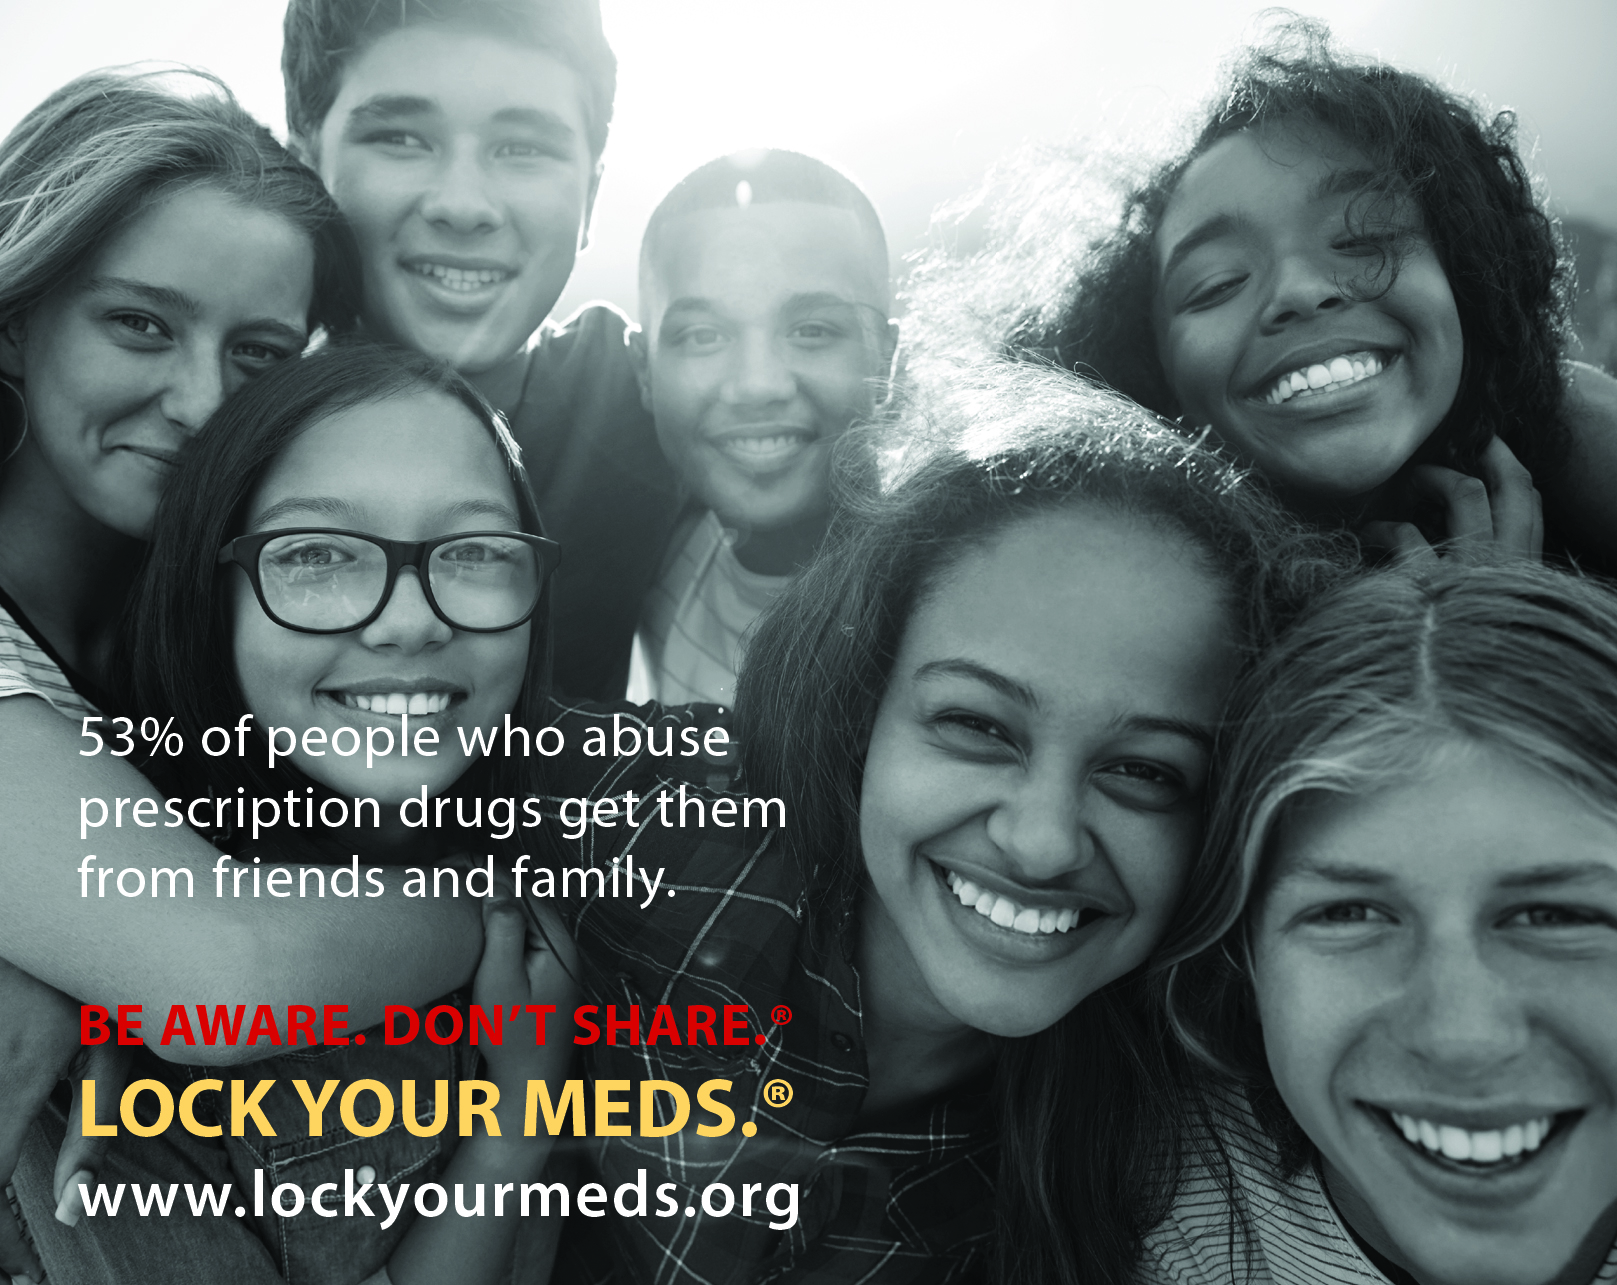 A group of seven diverse high schools students smile for the camera: 53% of people who abuse prescription drugs get them from friends and family. Be Aware. Don't Share. Lock Your Meds. www.lockyourmeds.org/pledge